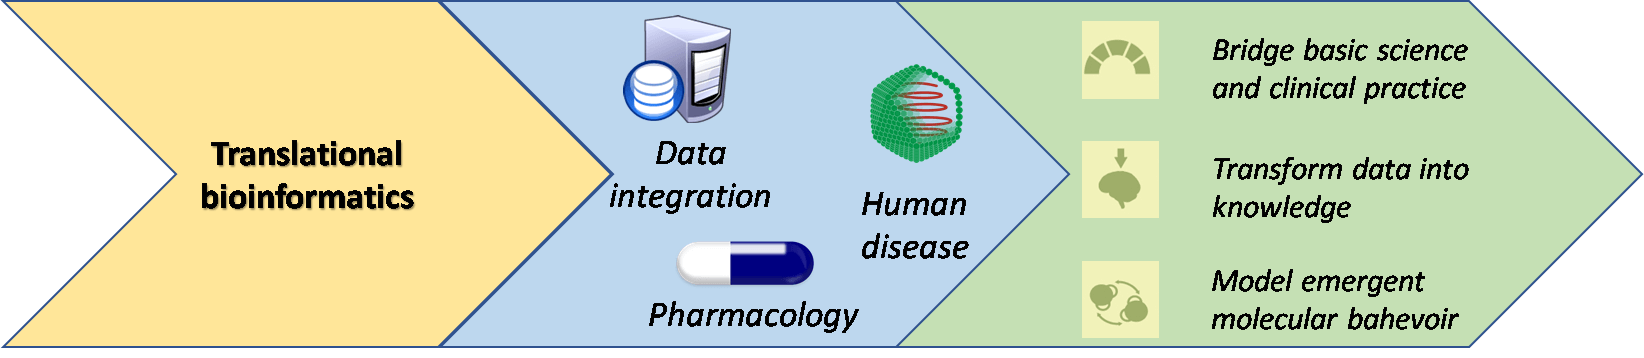 Figure 1. Translational Bioinformatics.